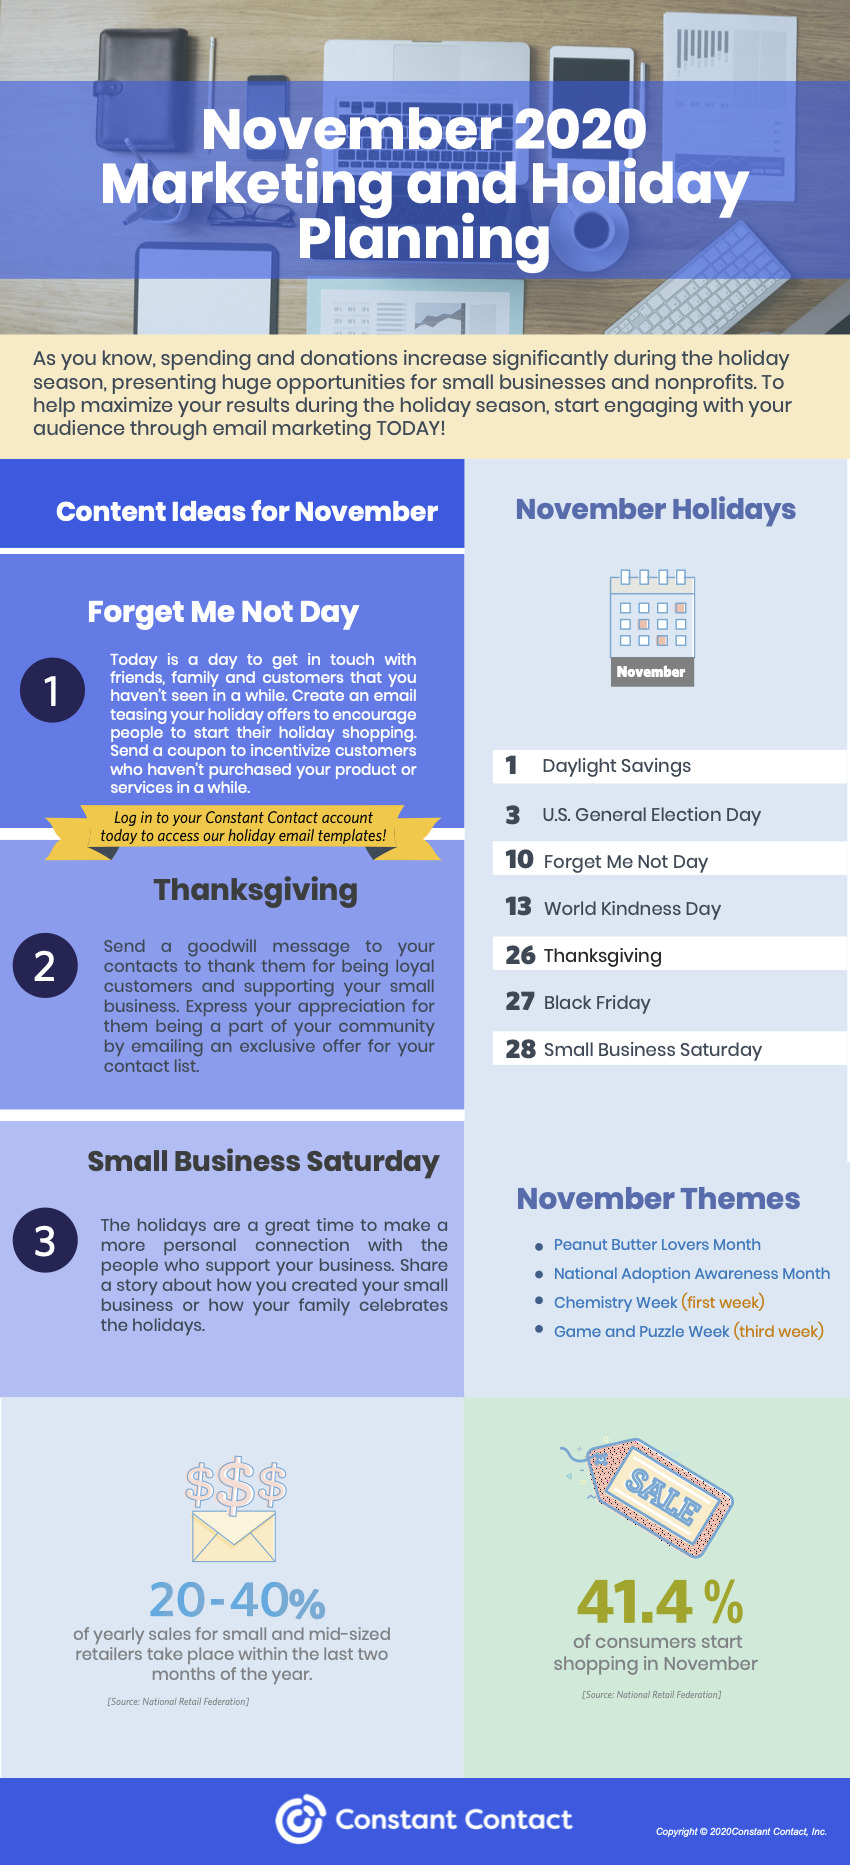 November 2020 marketing holidays